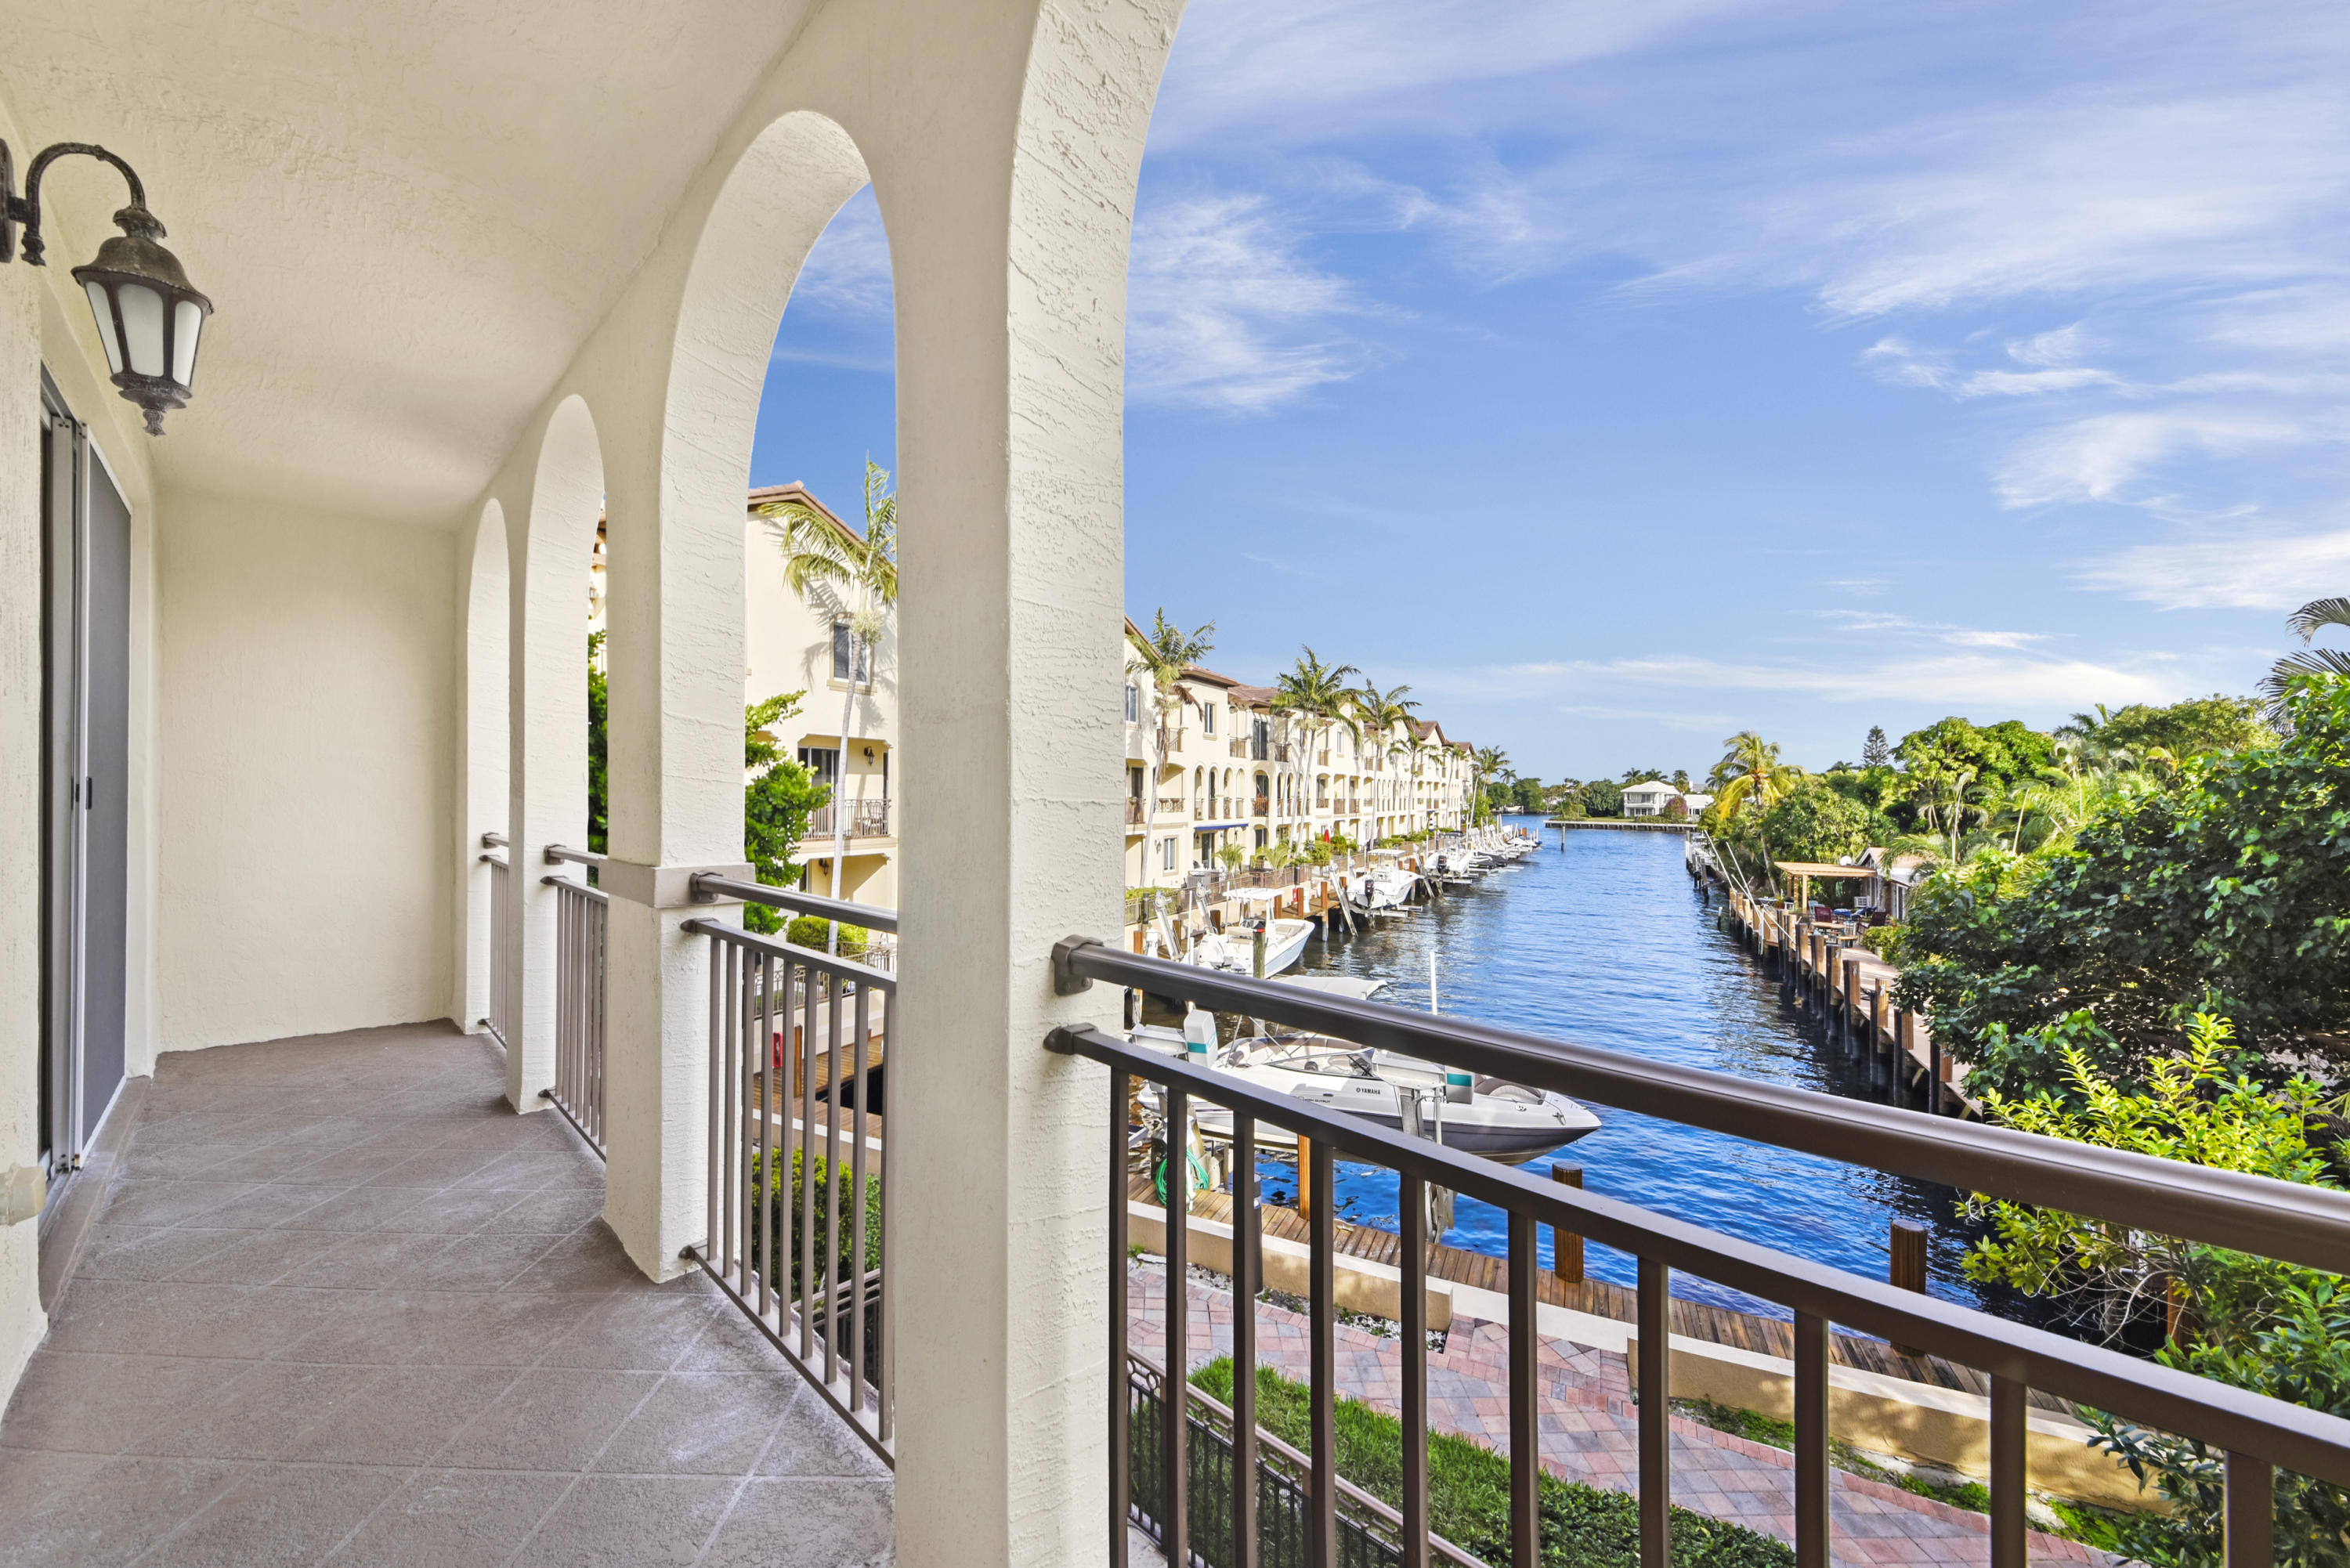 Welcome home to this spacious 3 level, 3 bedroom, 3.5 bathroom townhouse in the intracoastal community of Waterside. All 3 levels have the most amazing waterfront Intracoastal views! This luxury townhouse features beautiful marble flooring with 2 year old hard wood floors in all 3 bedrooms and stairwells, all updated stainless steel appliances, and granite throughout. The main level features a huge living/dining area and kitchen with spectacular Intracoastal views! The 3rd floor features an amazing master suite with huge master closet space and a beautiful balcony overlooking the water. Also on the 3rd floor is bedroom #2 and an additional bathroom. The ground floor level has an entire additional bedroom suite equipped with a full bathroom and an additional living area. Enjoy your evening on 1 of your 3 covered balconies/patios looking out at the beautiful South Florida waterways. The amazing community features beautiful pool and spa with an intracoastal view, clubhouse/community room and exercise room. Owners may have up to 2 pets per HOA and combined weight not to exceed 50 lbs. Boat dock is not included with this property.